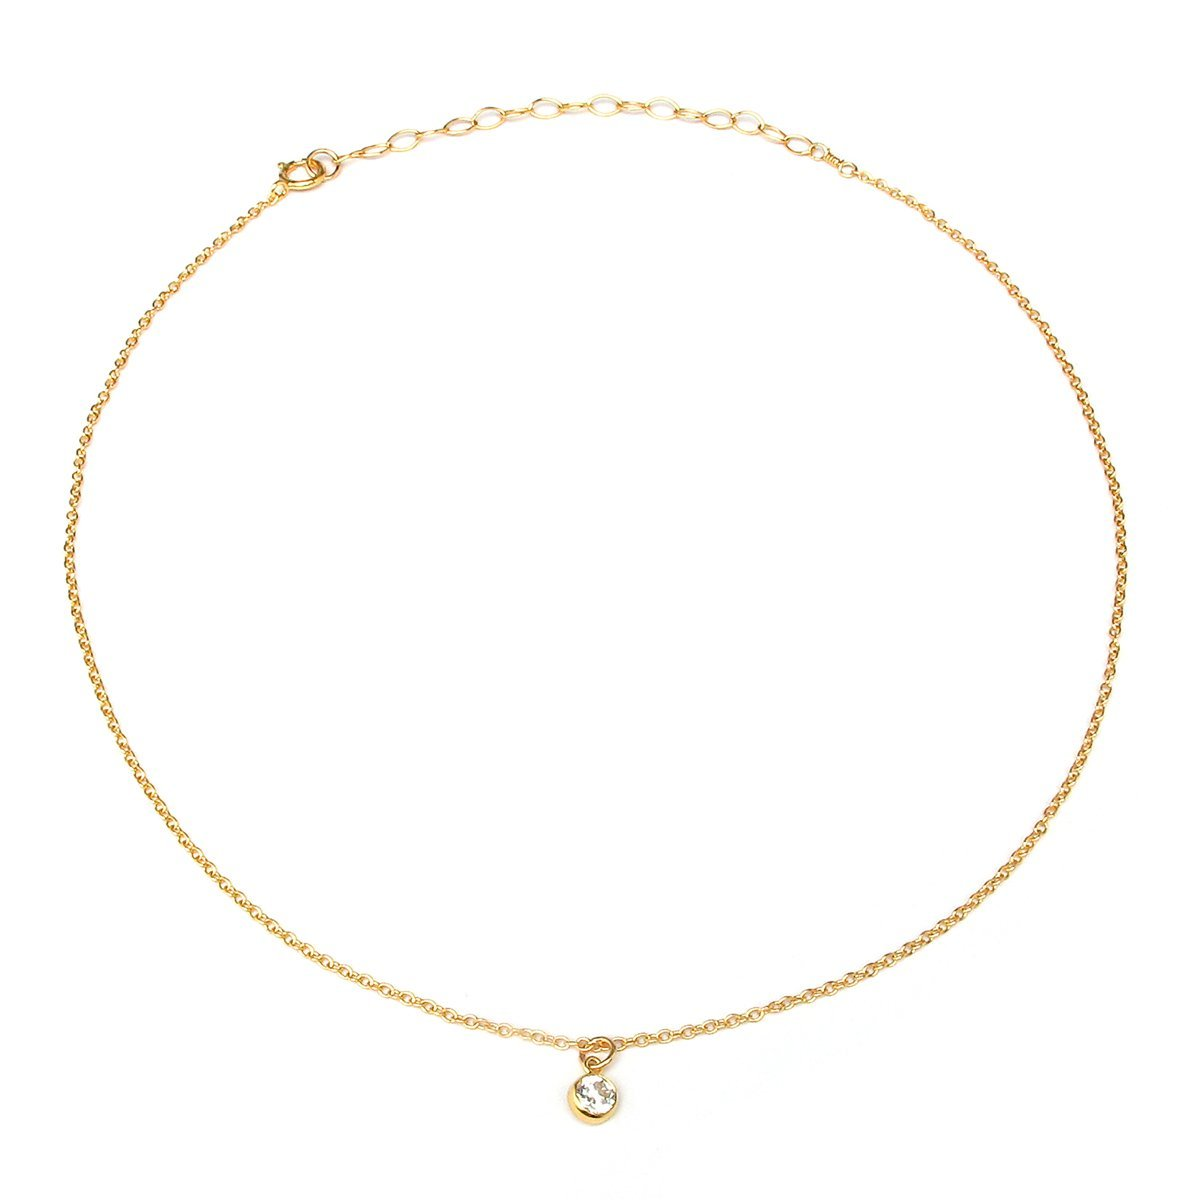 BENIQUE Dainty Necklace Choker for Women - Freshwater Cultured Pearl, Fine Chain for Layering, AAA Cubic Zirconia Drop, 14K Gold Filled, Made in USA, 13''+3'' Adjustable Ext. (Clear CZ Drop)